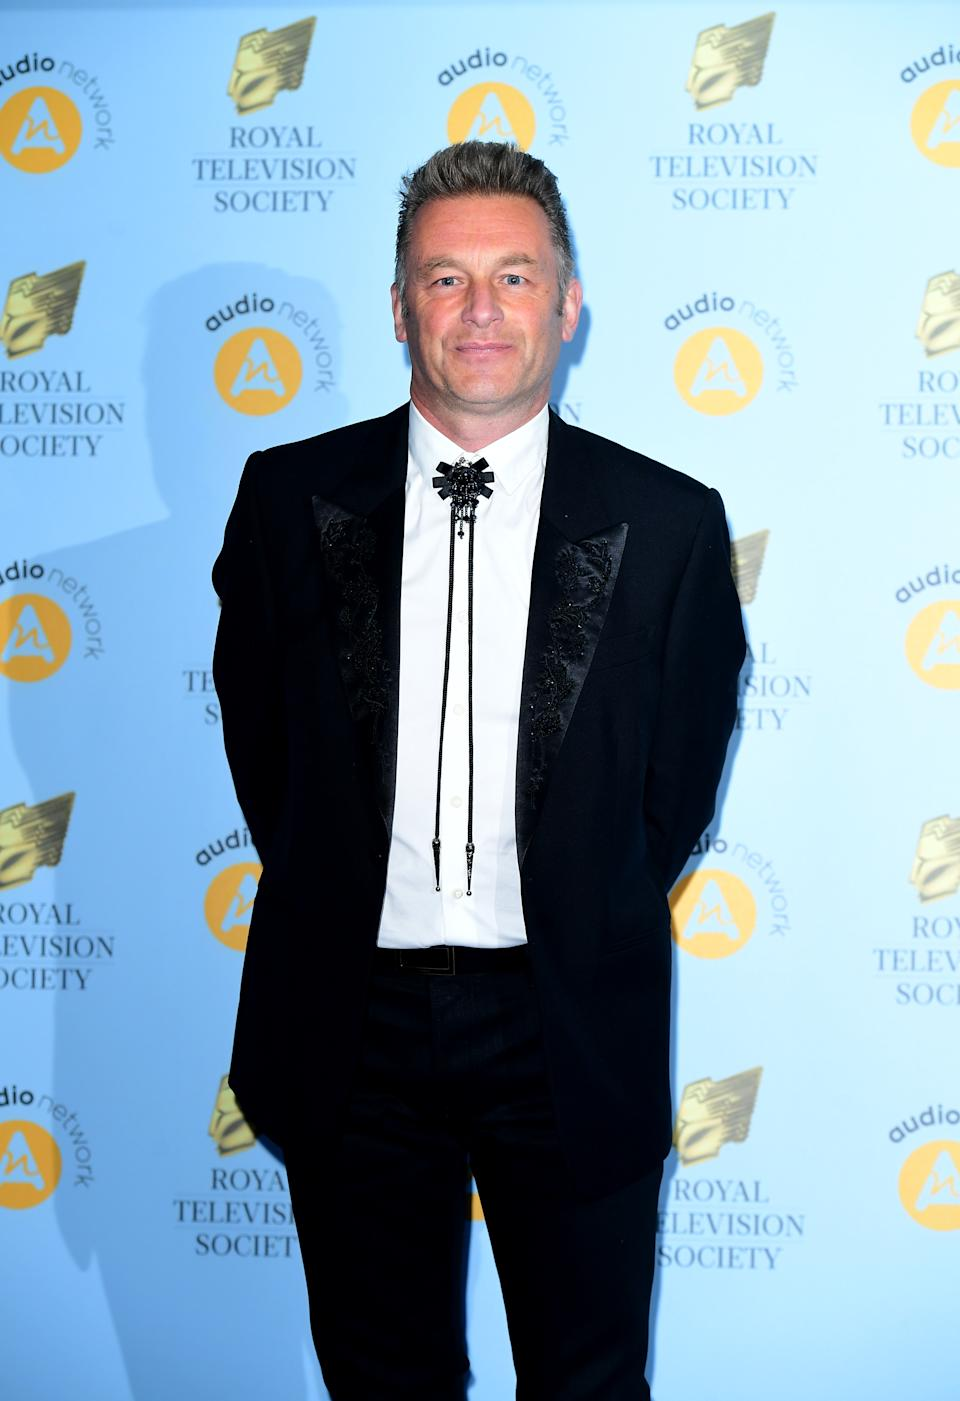 Chris Packham attending the Royal Television Society Programme Awards at Grosvenor House Hotel, Park Lane, London.